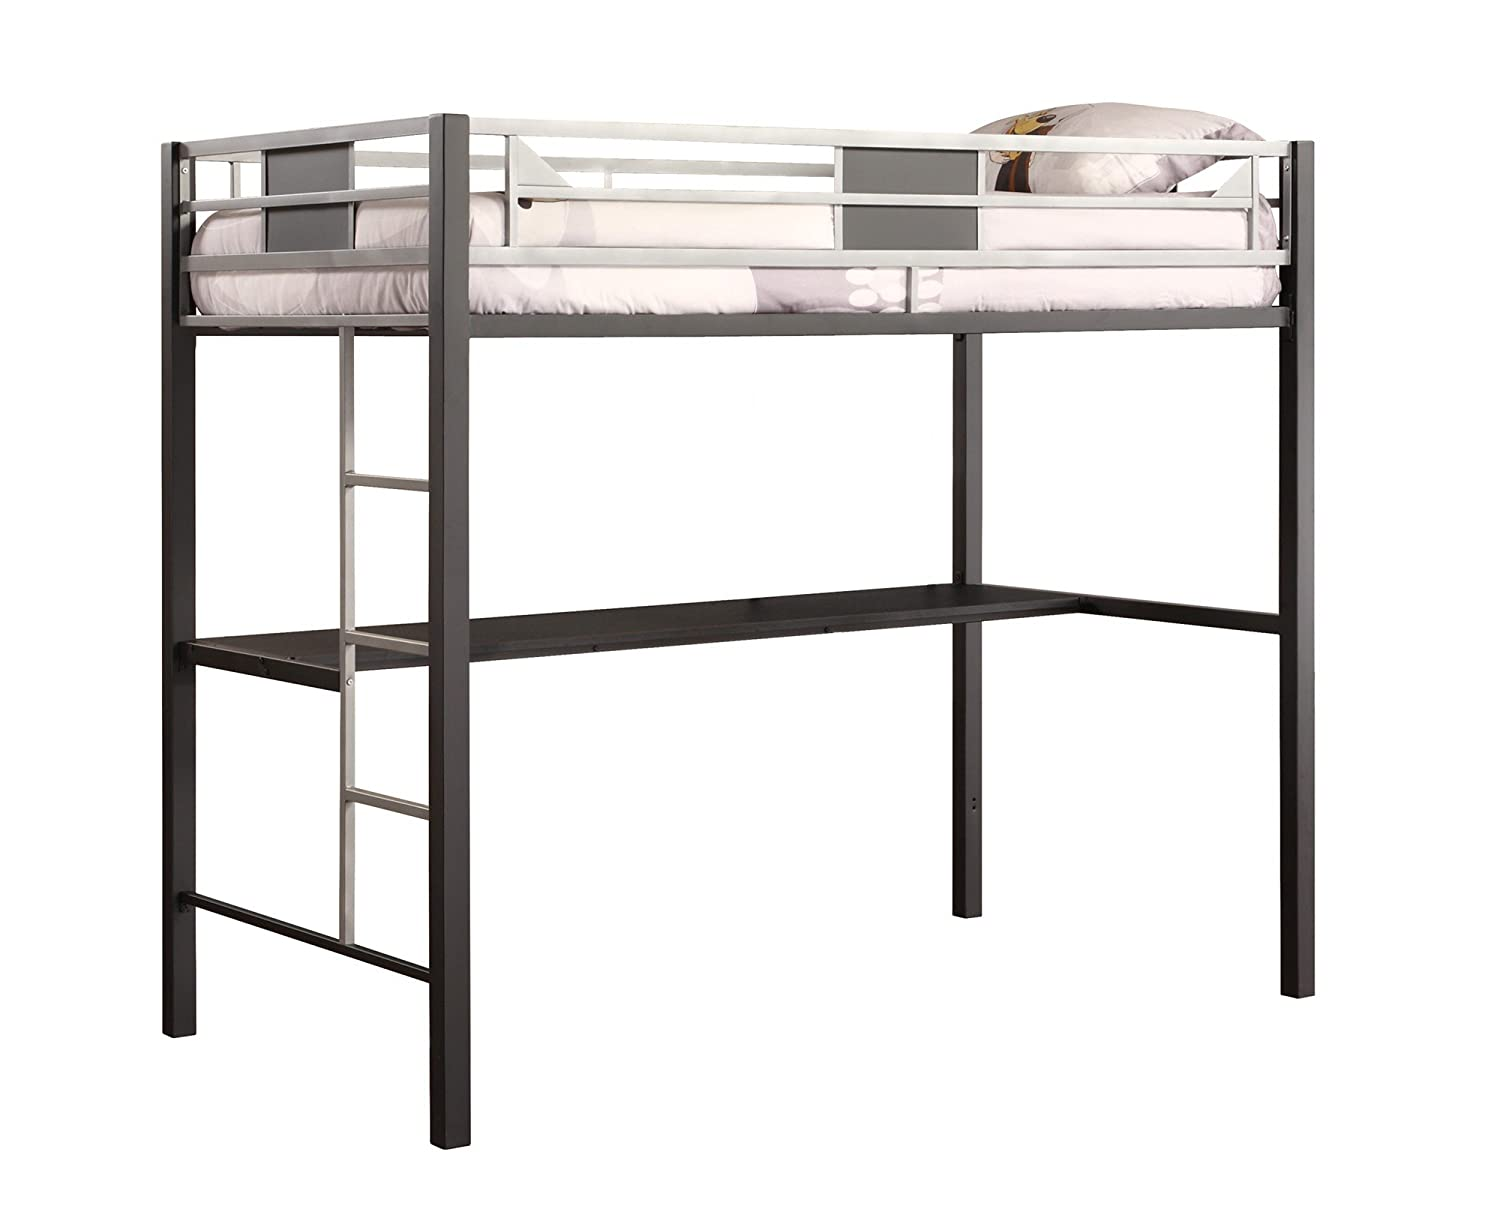 DHP Screen Loft Metal Bunk Bed with Desk and Ladder, Space-Saving Design, Silver Dorel Home Furnishings 5461096